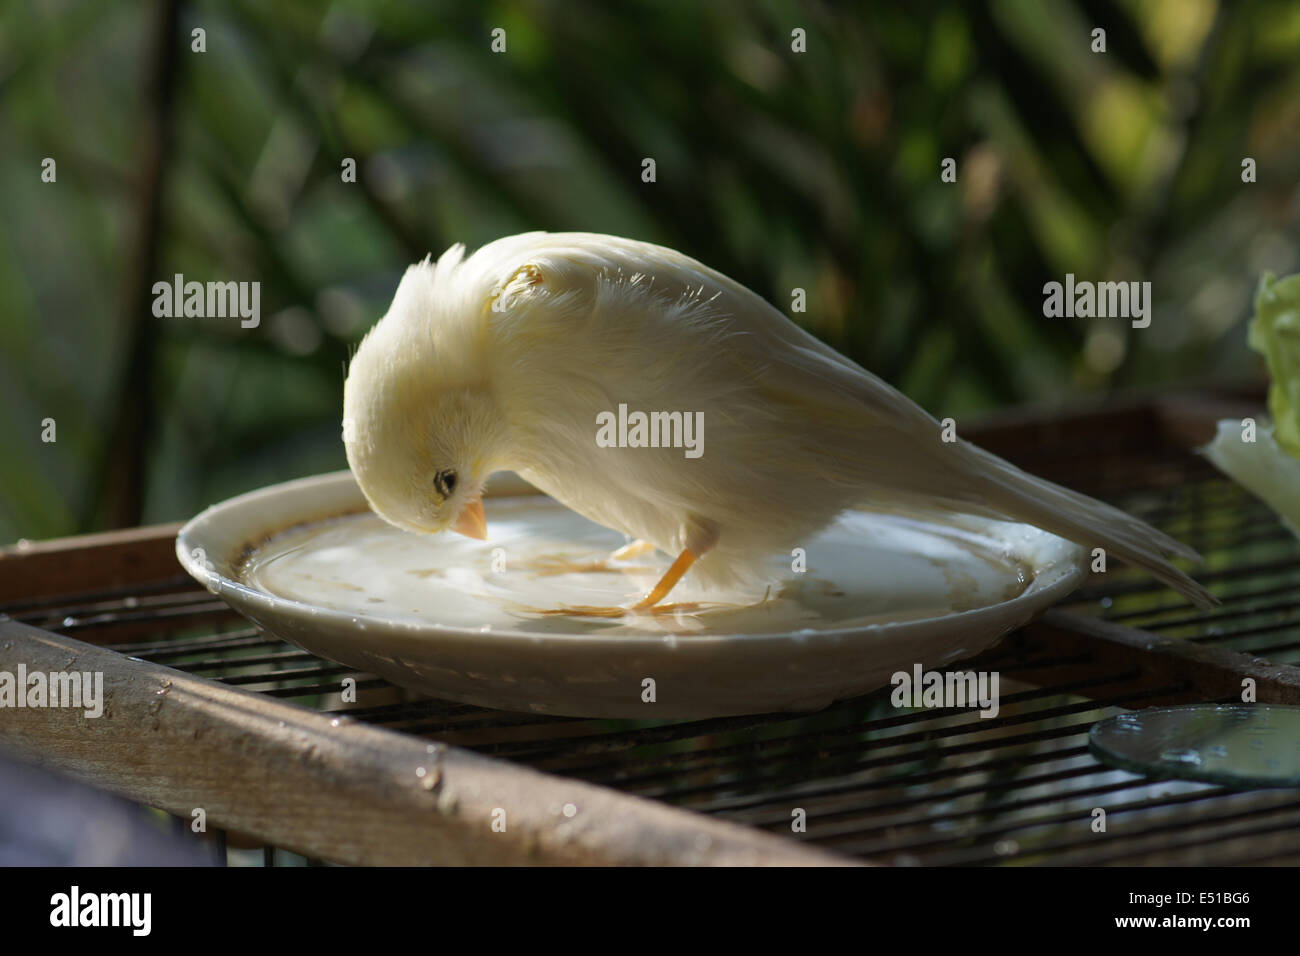 Canary in a birds bath - Stock Image